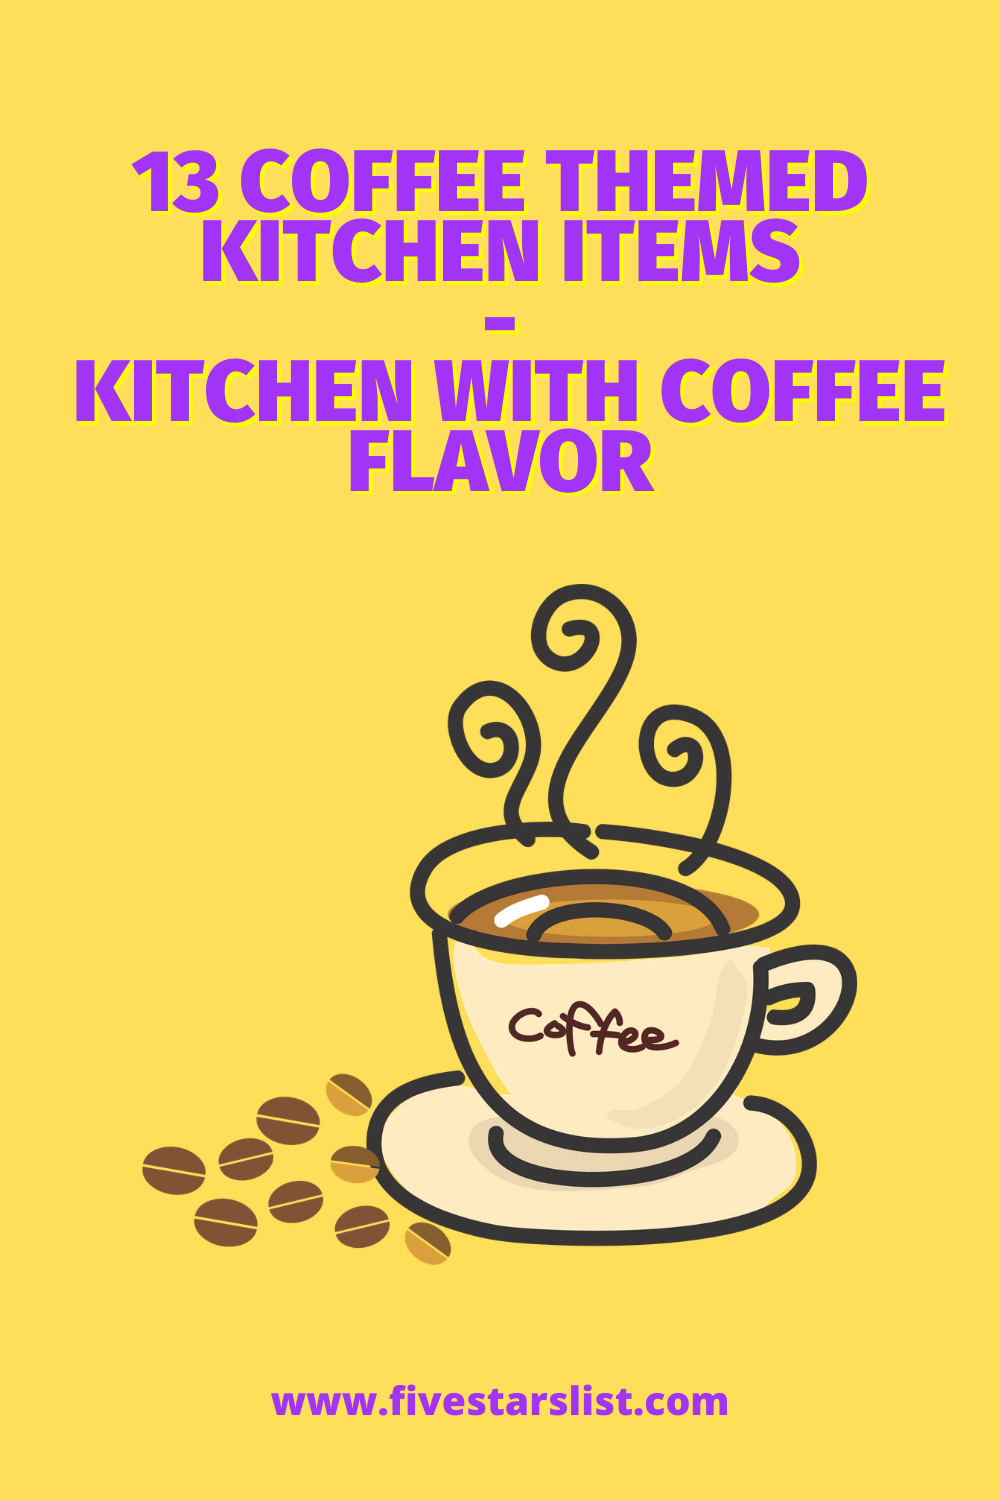 Coffee Themed Kitchen – Kitchen with Coffee Flavor